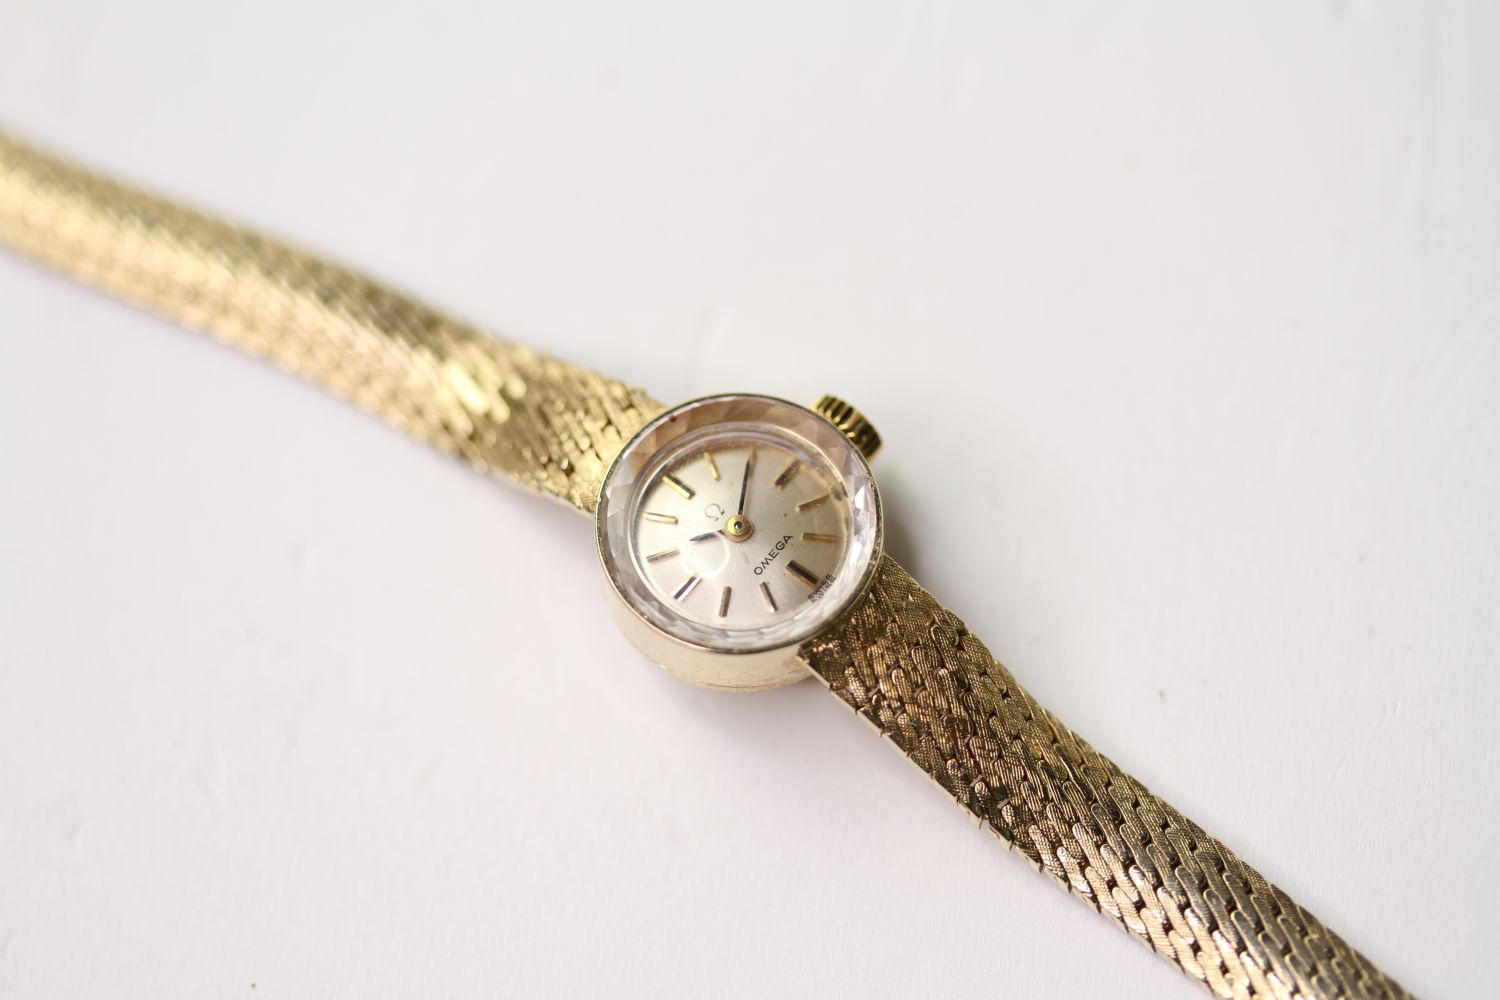 VINTAGE OMEGA WRISTWATCH, circular silver dial with baton hour markers, 14mm 14ct gold case, snap